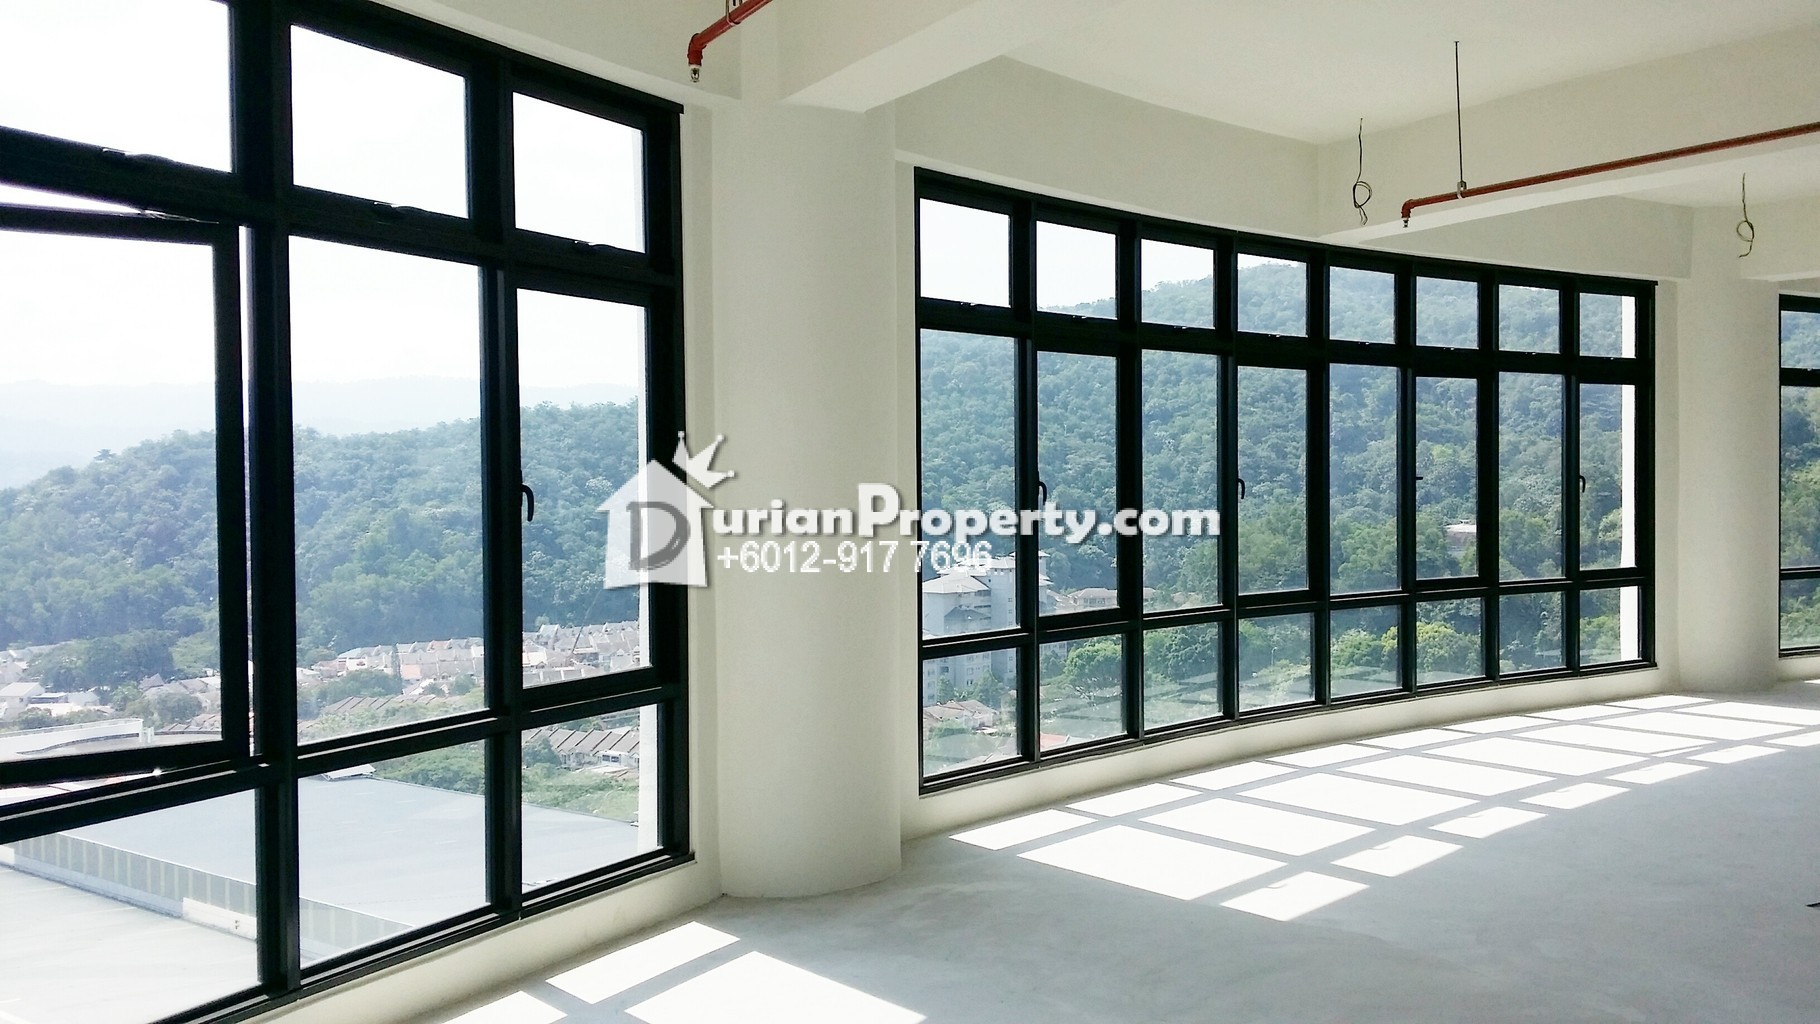 SOVO For Sale at Wangsa 118, Wangsa Maju